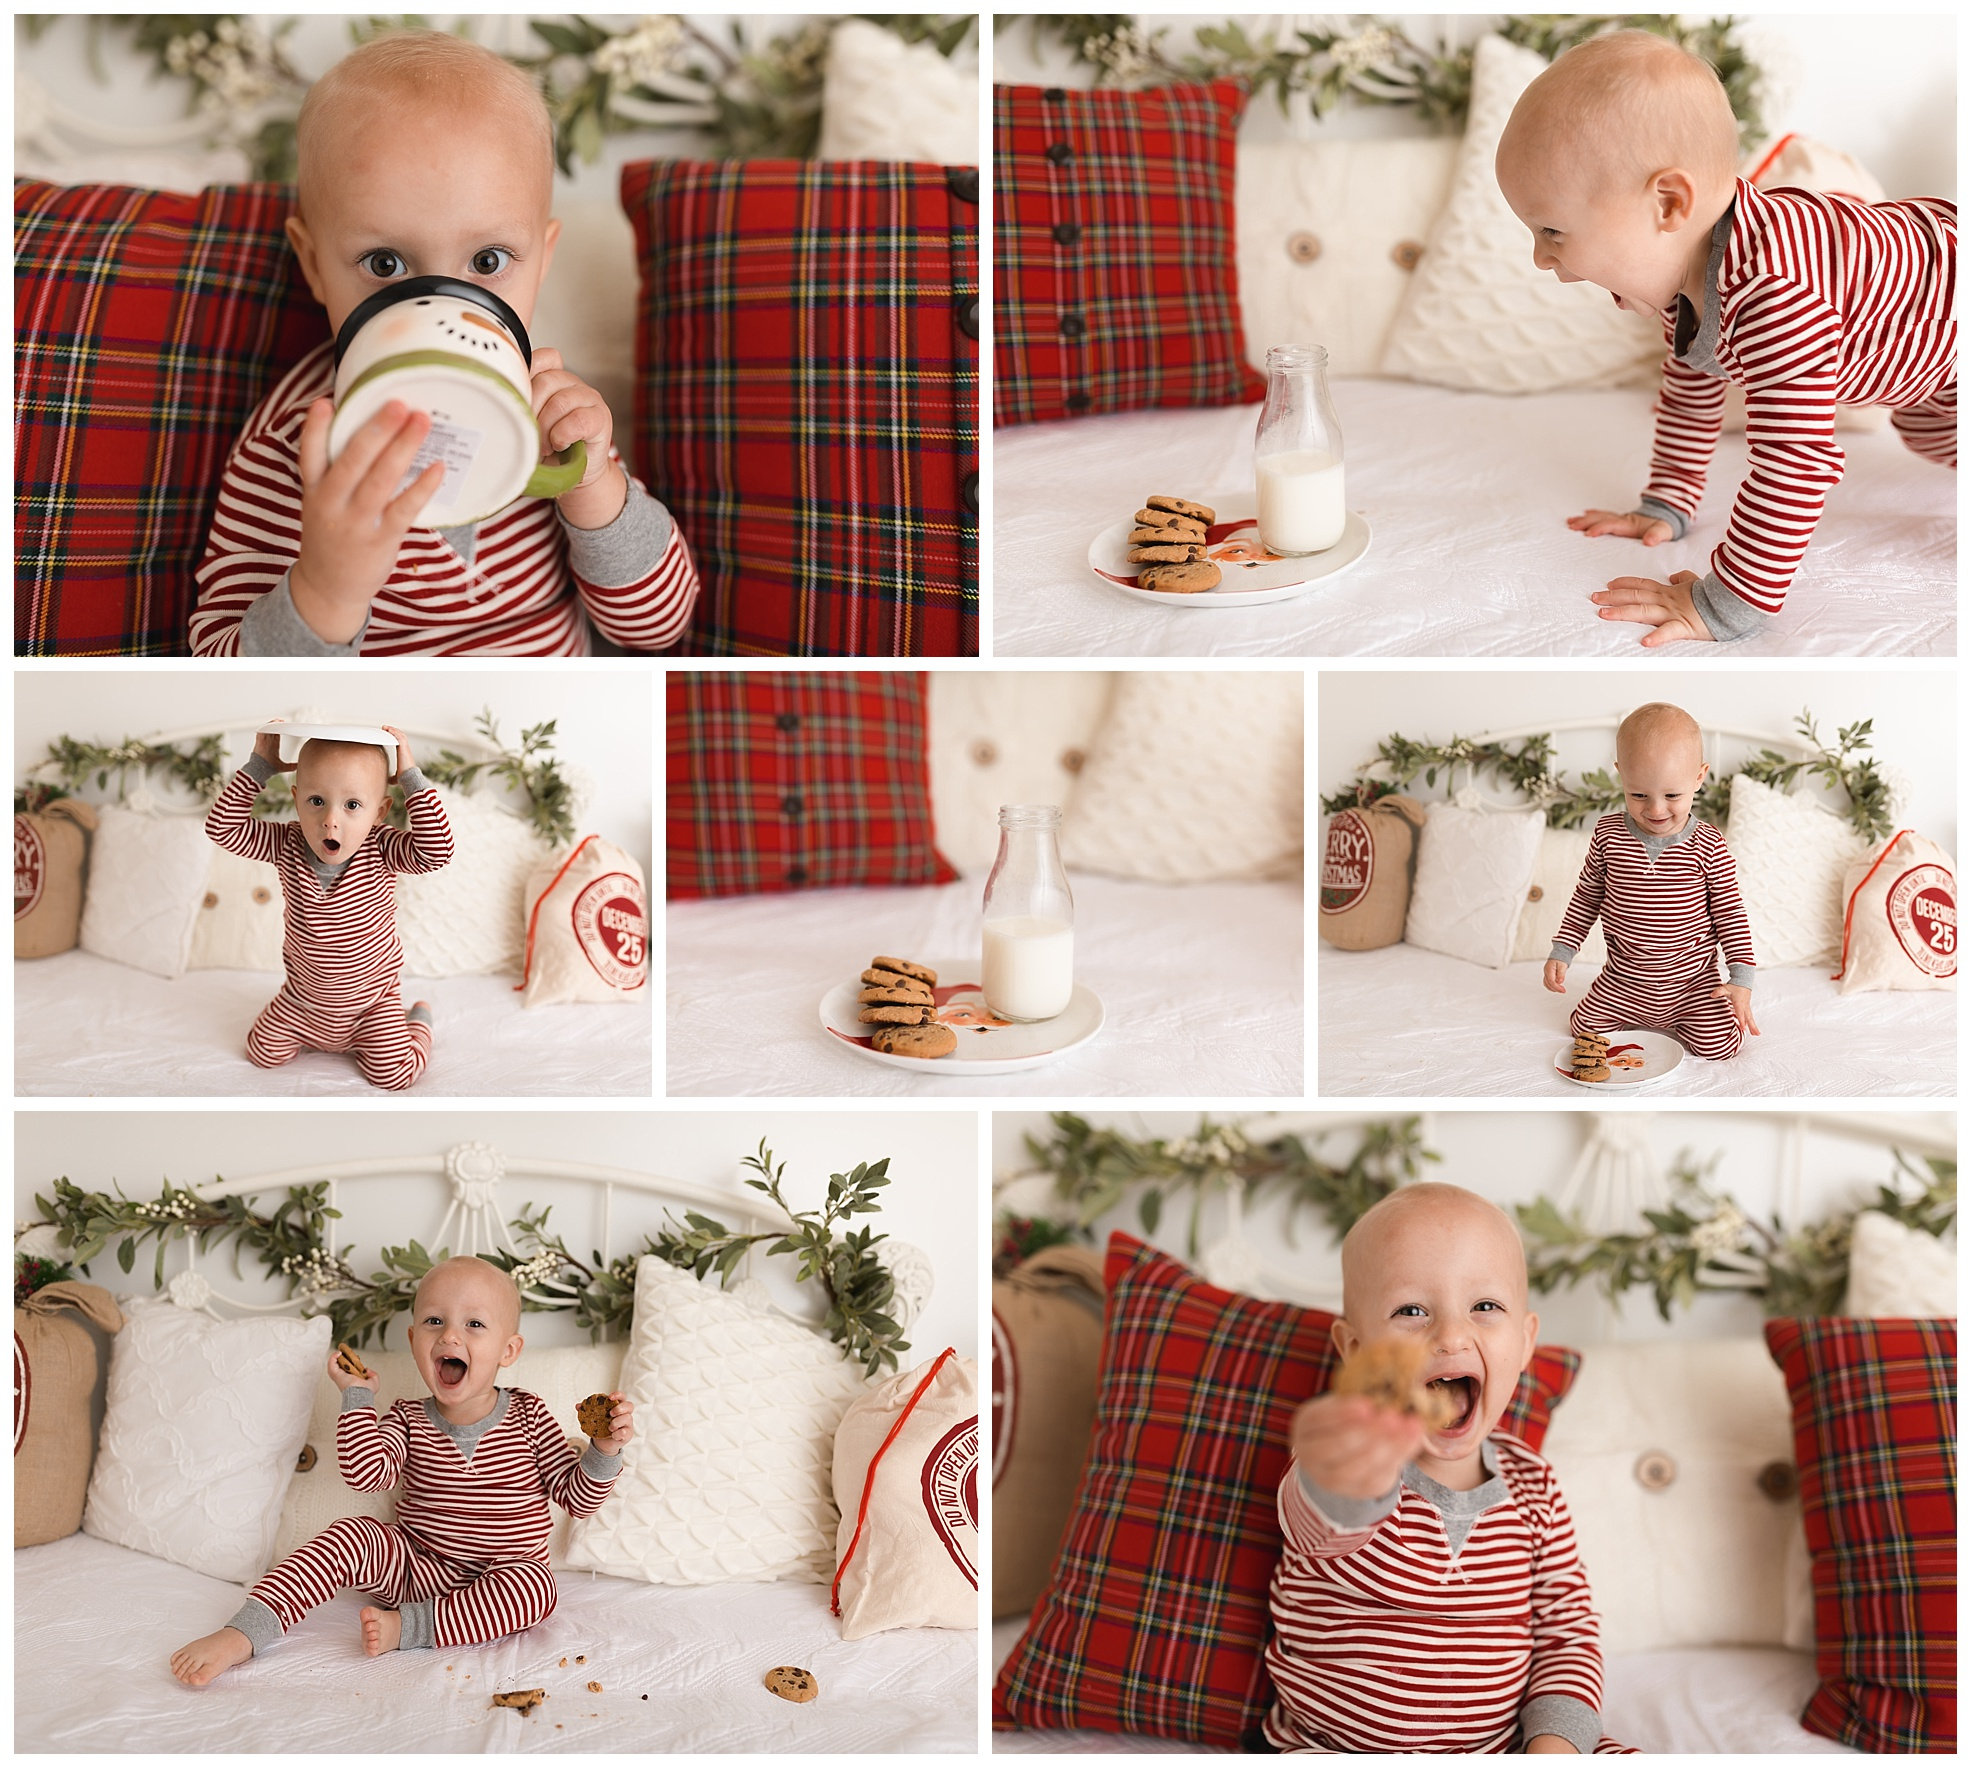 2017-11-16_0001.jpgsan-antonio-christmas-sessions-holiday-sessions-cookie-and-milk-mini-session